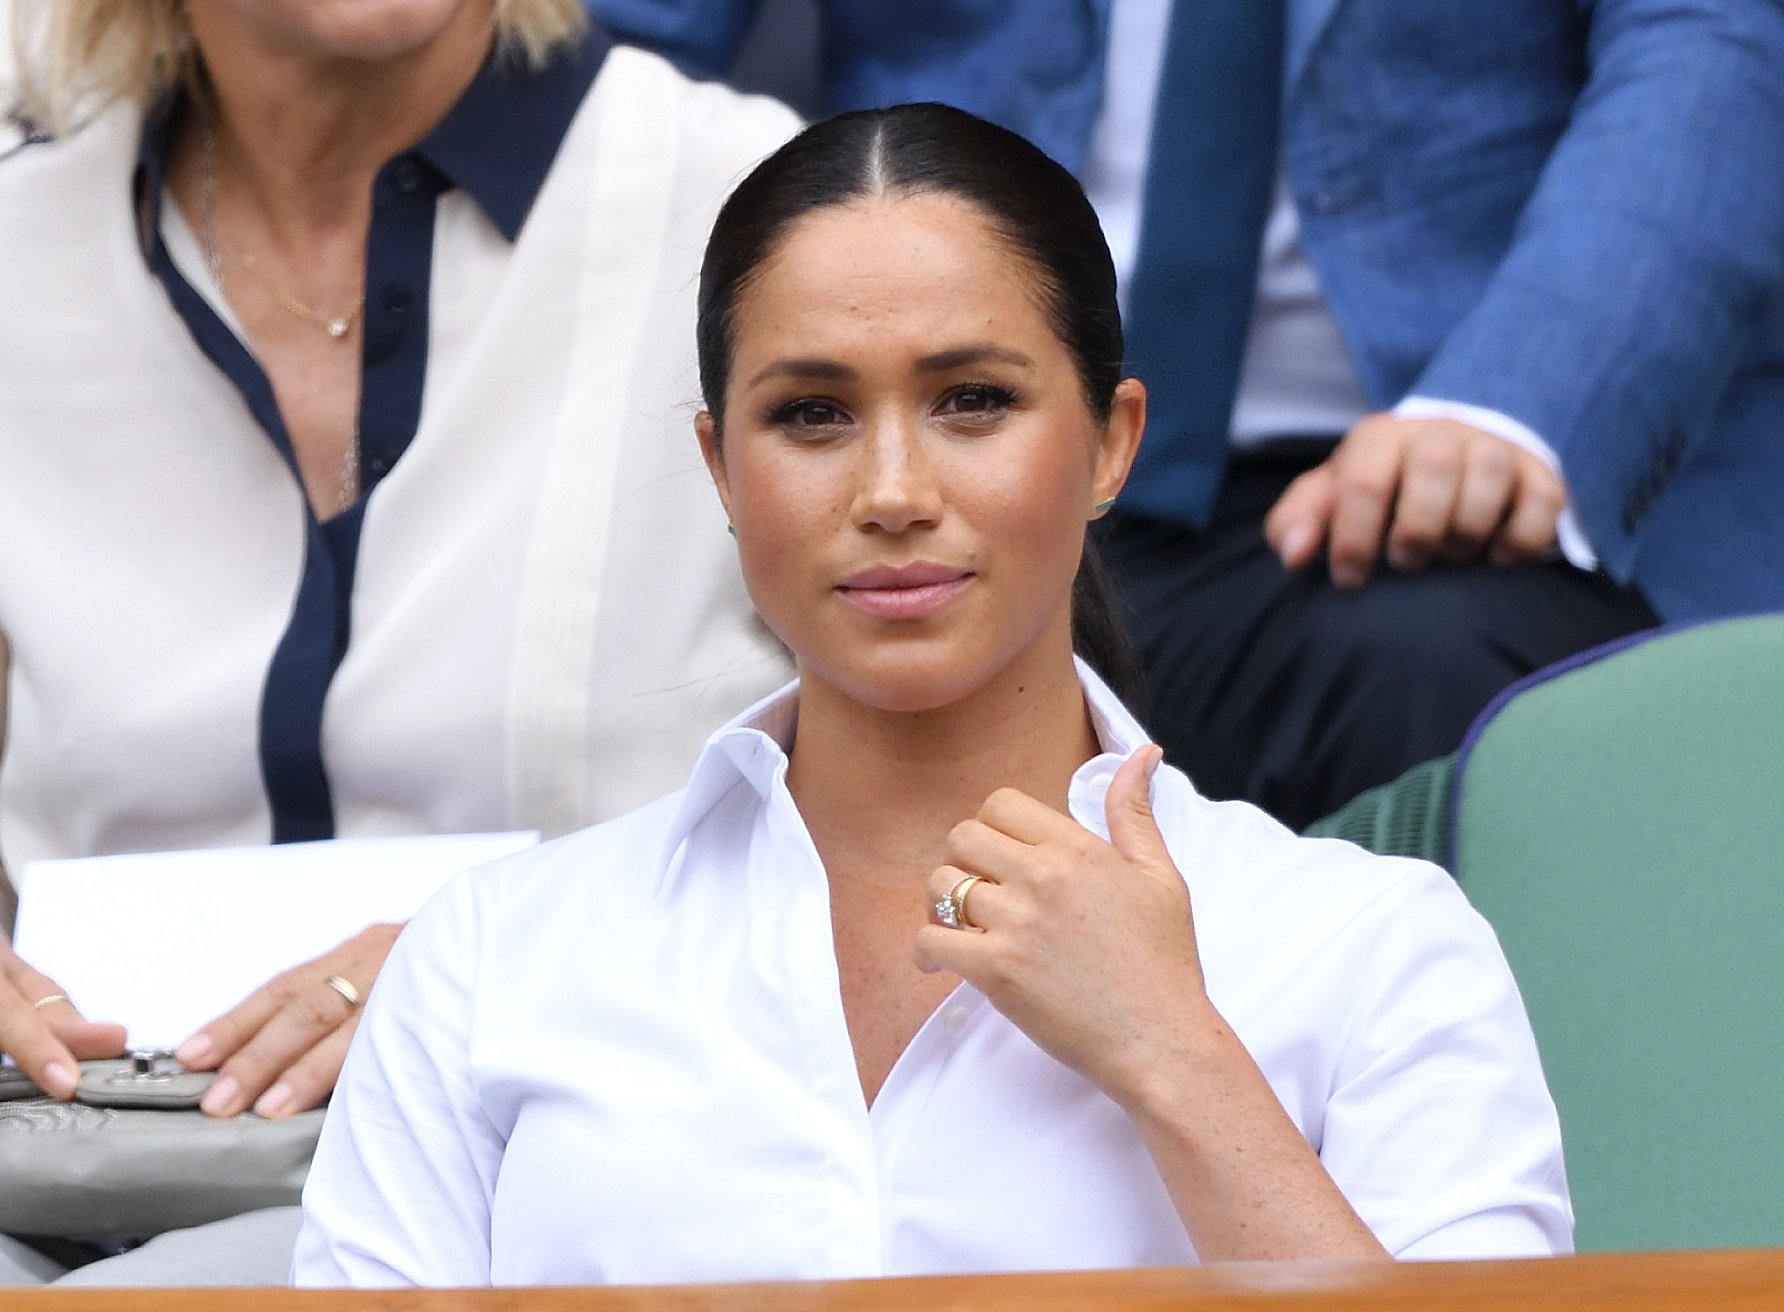 Meghan, Duchess of Sussex attends the Women's Singles Final of the Wimbledon Tennis Championships on July 13, 2019. | Photo: GettyImages